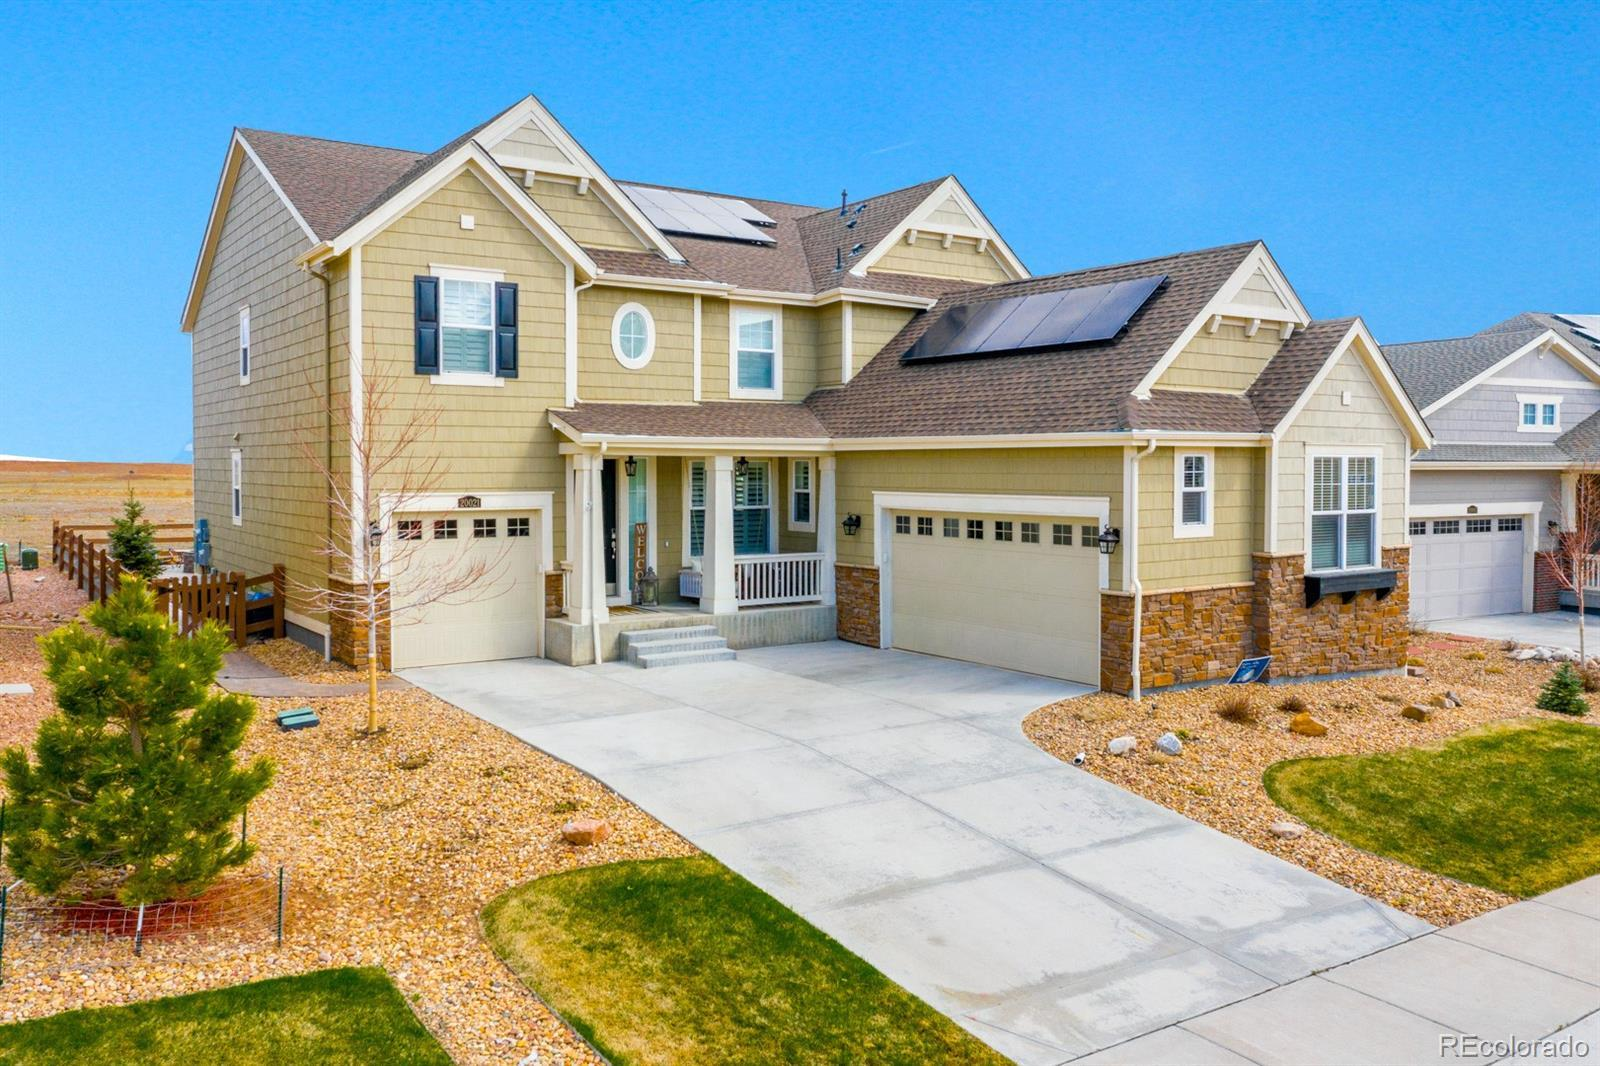 20021 W 95th Place, Arvada, CO 80007 - #: 4795114